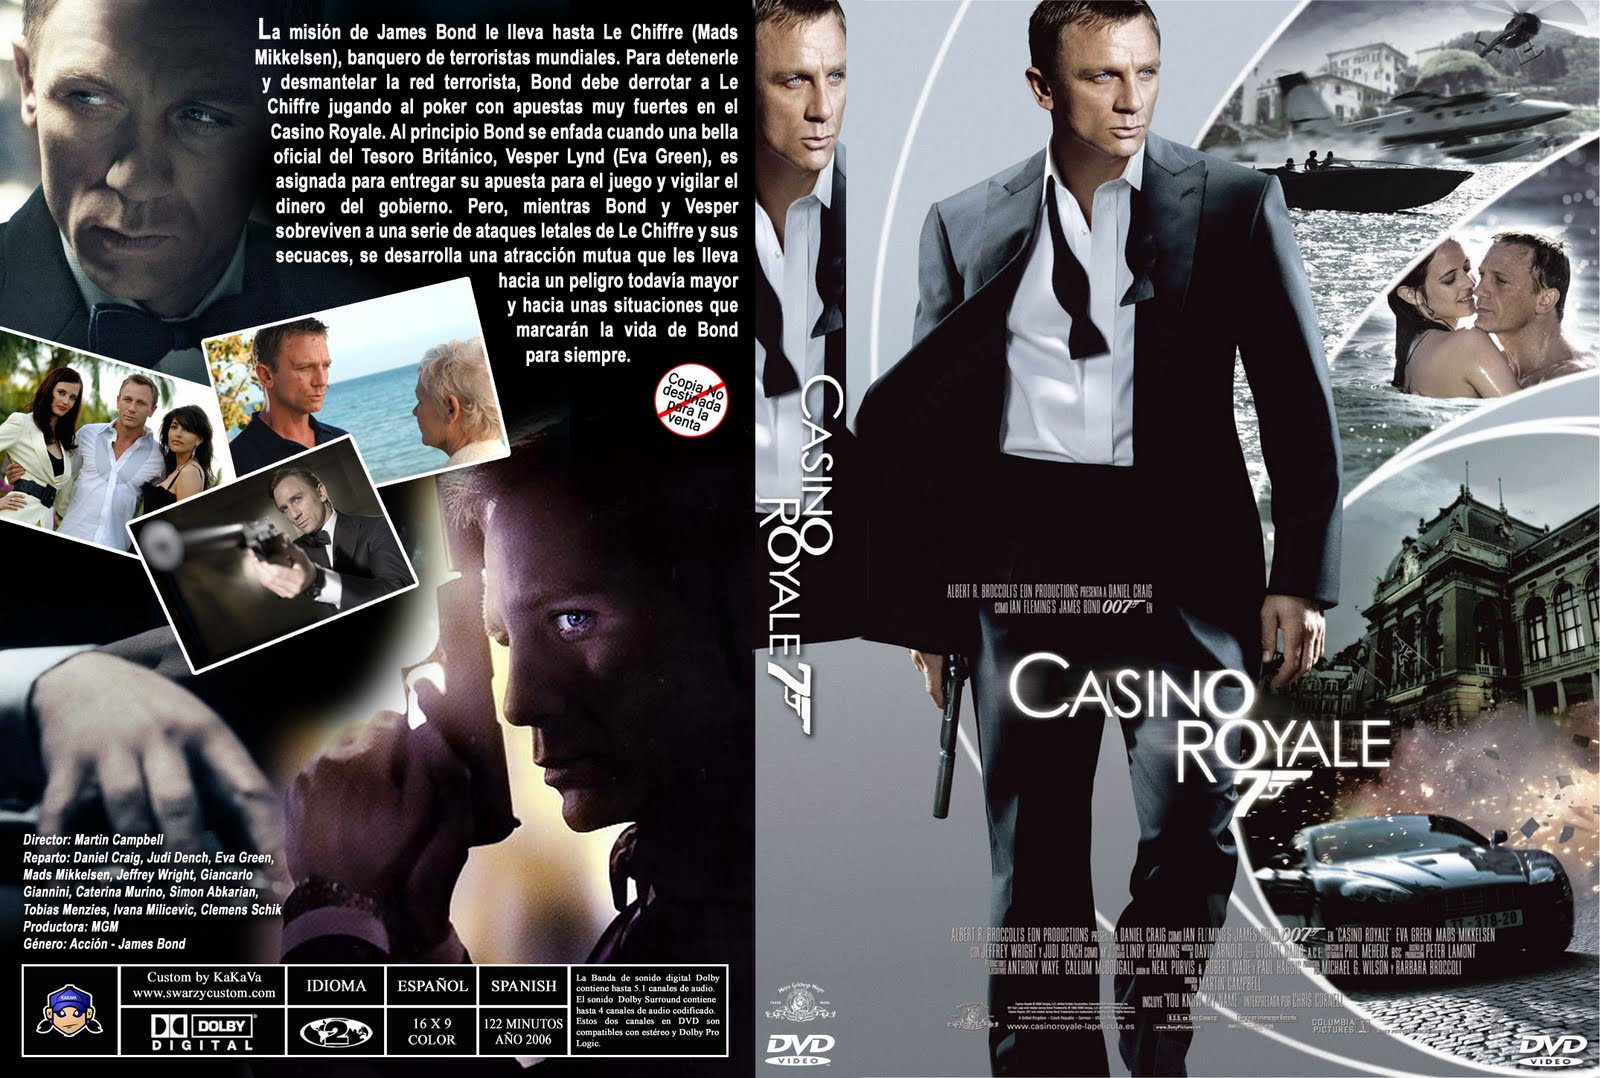 Casino royale 007 pelicula ielts idp slot booking dates in hyderabad